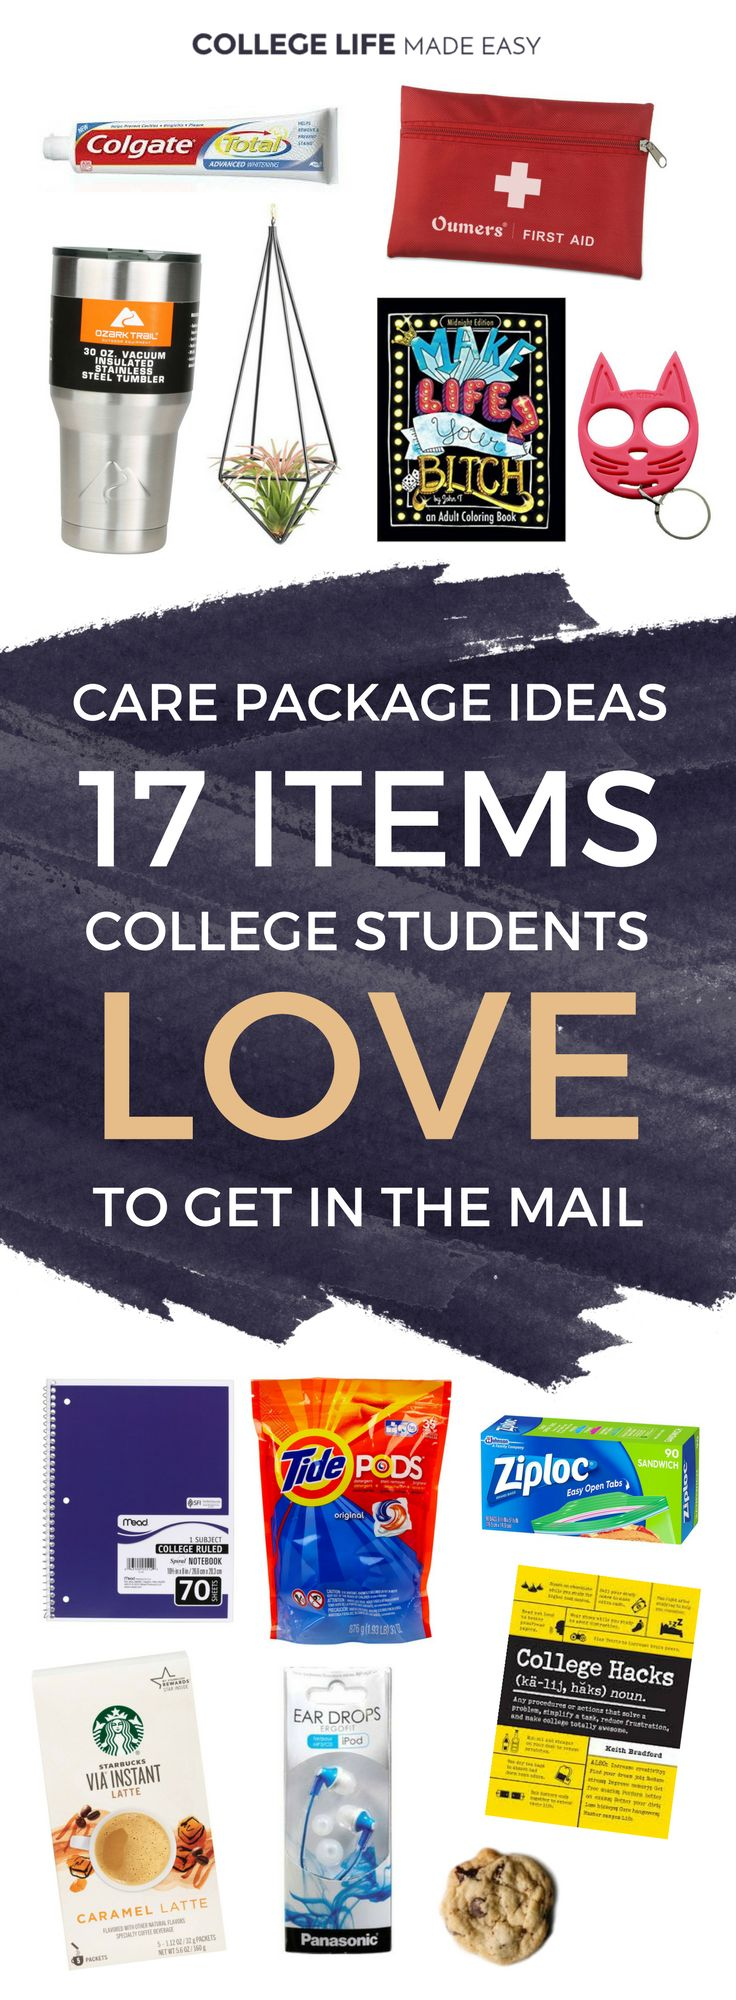 Care Package Ideas: 17 Items College Students Love to Get | College Student Care Package Ideas for Guys for Friends For Girls | Dorm Room Survival Kits | Fun Mail | College Care Package Ideas List Articles Posts | Creative DIY Care Package via @esycollegelife